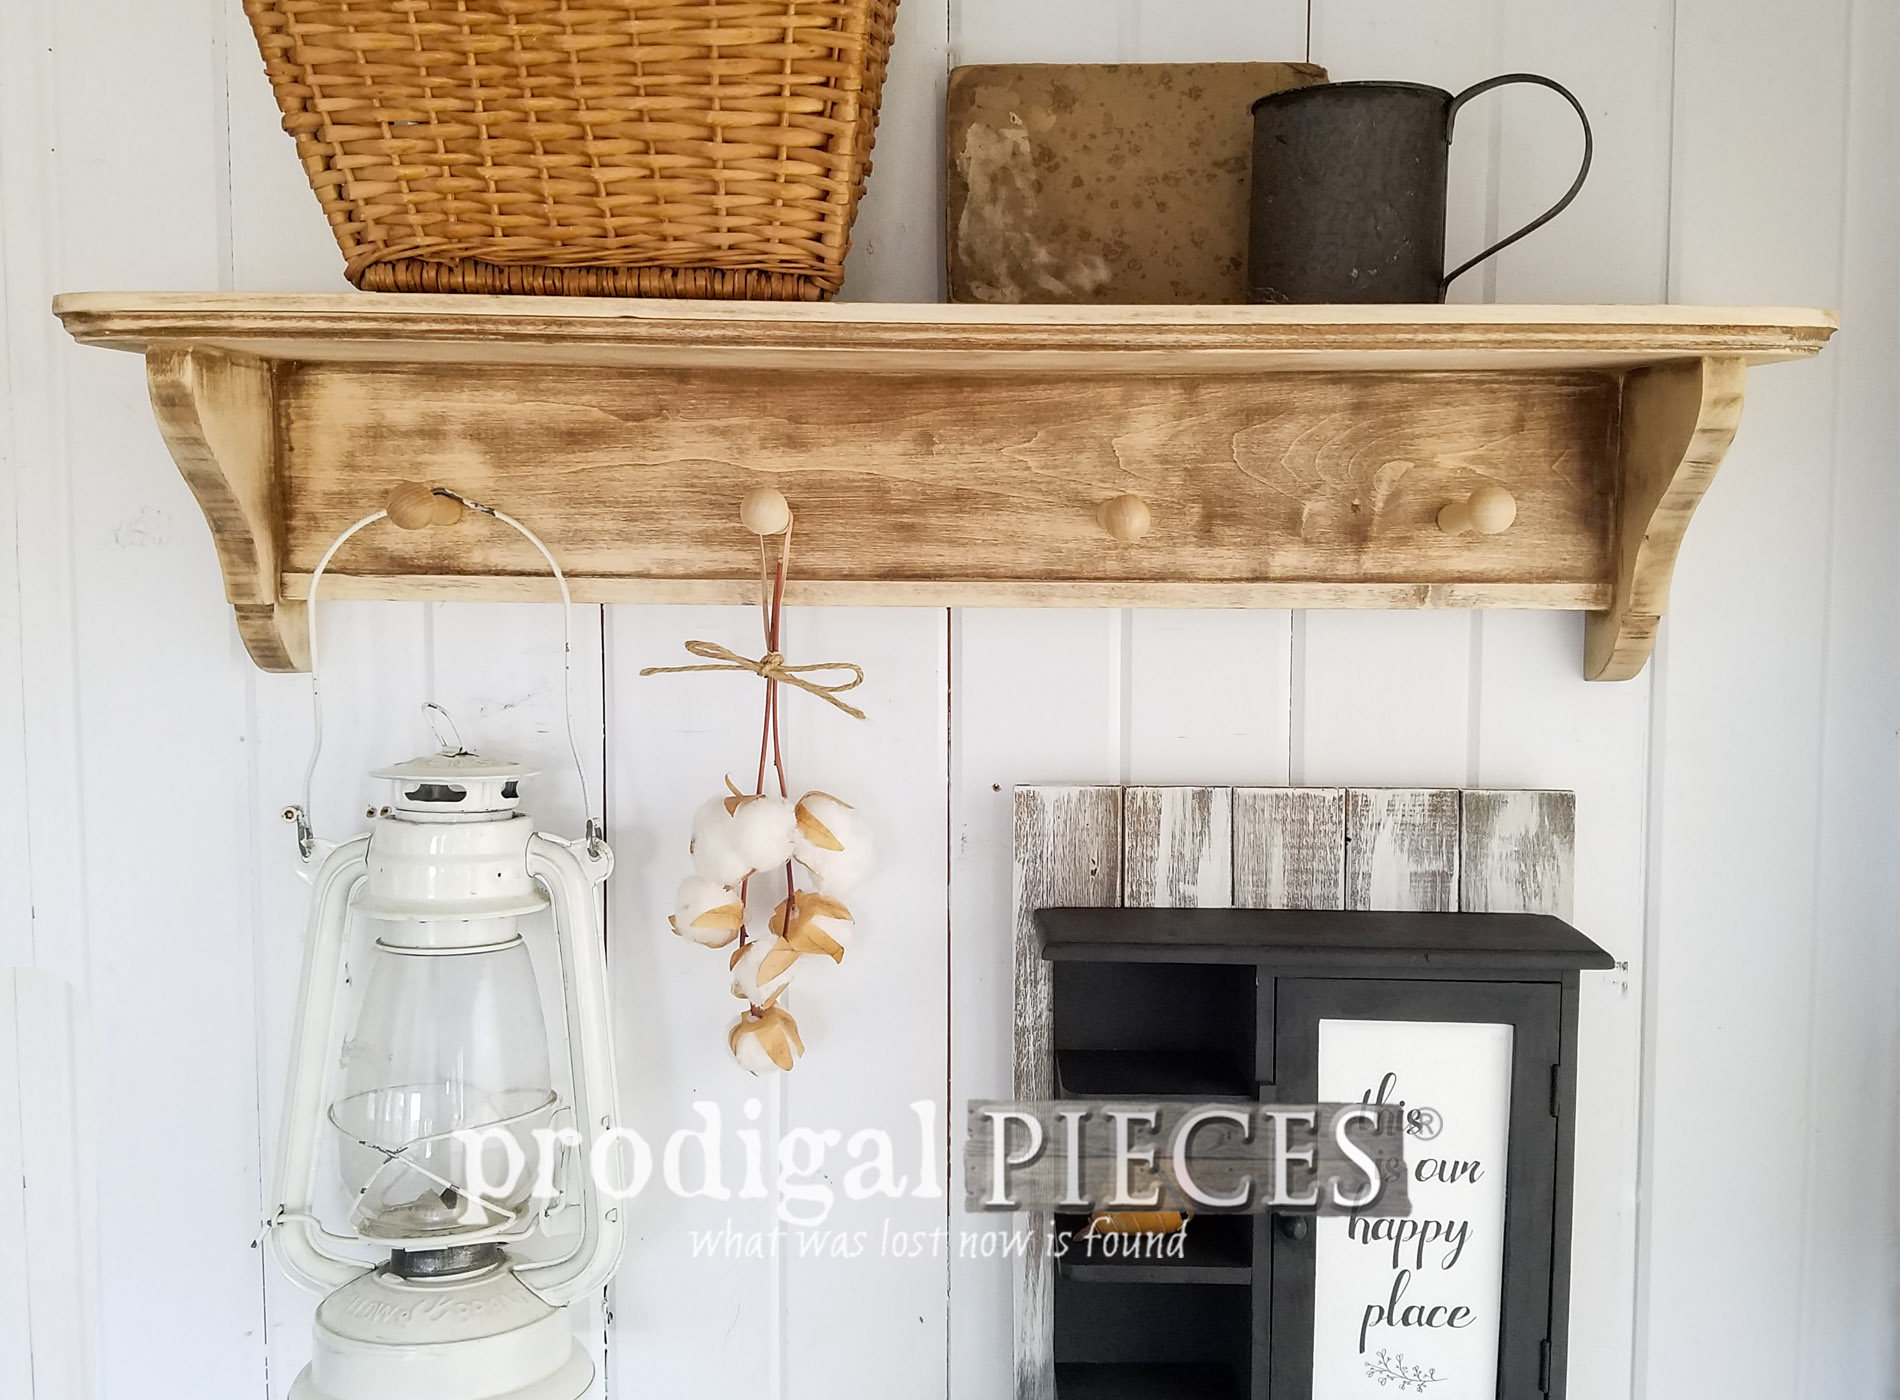 Featured DIY Farmhouse Decor from Thrifted Finds by Larissa of Prodigal Pieces | prodigalpieces.com